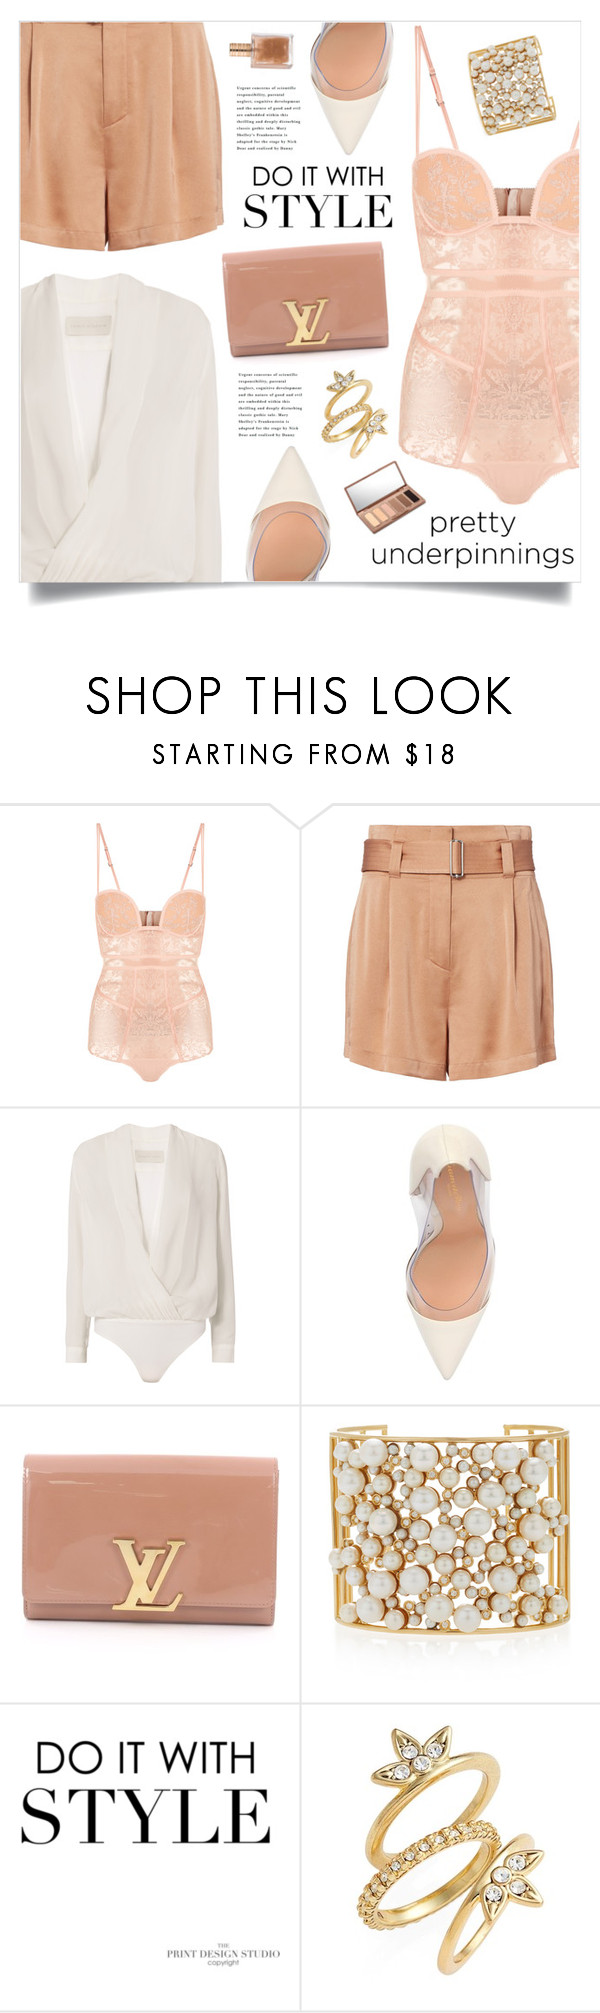 """Do It With Style"" by marina-volaric ❤ liked on Polyvore featuring La Perla, A.L.C., Michelle Mason, Gianvito Rossi, Louis Vuitton, Nancy Newberg, Luv Aj, Urban Decay and prettyunderpinnings"